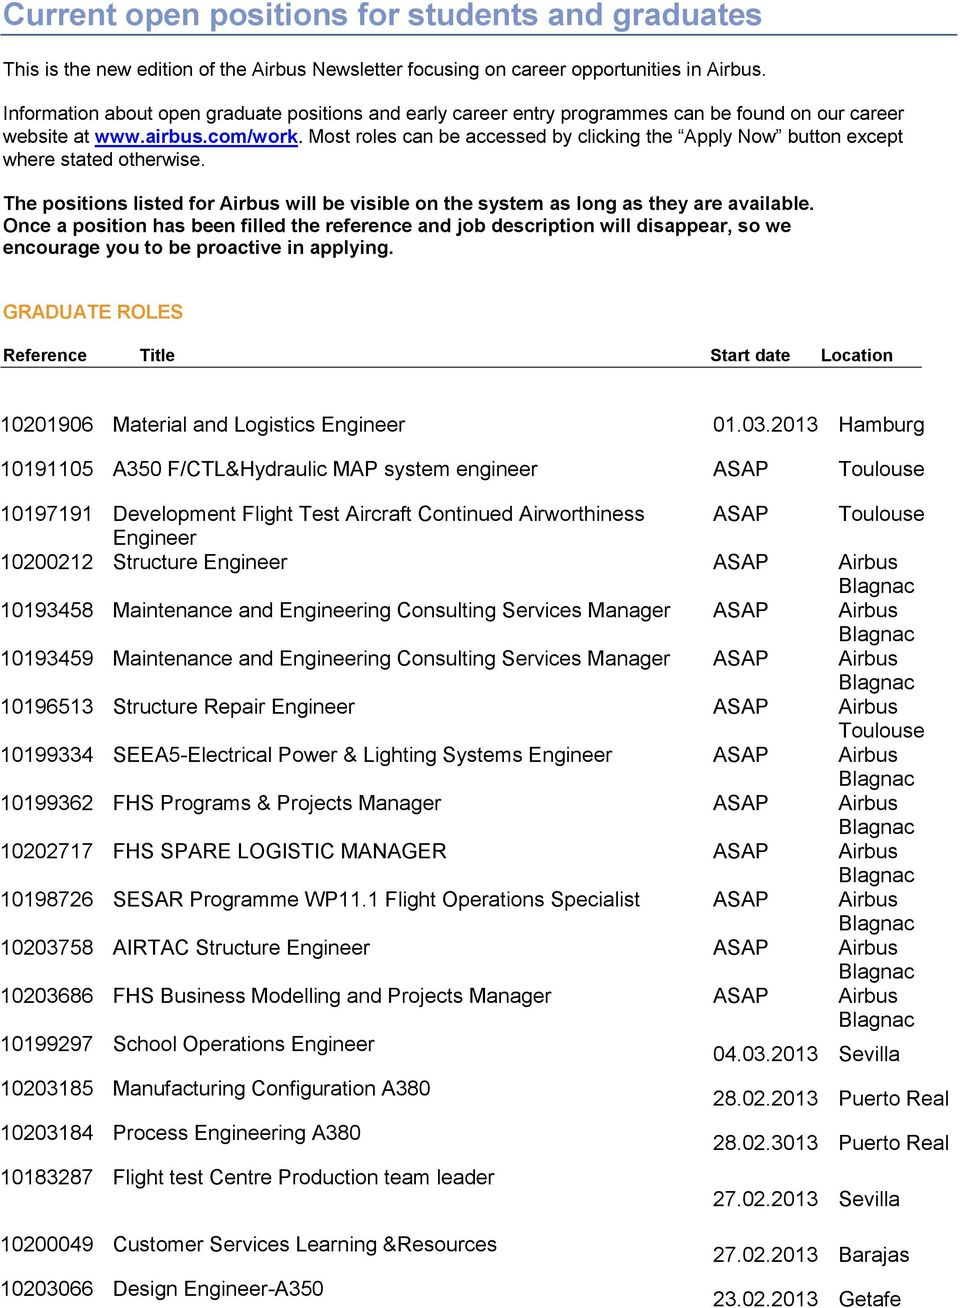 Most roles can be accessed by clicking the Apply Now button except where stated otherwise. The positions listed for Airbus will be visible on the system as long as they are available.